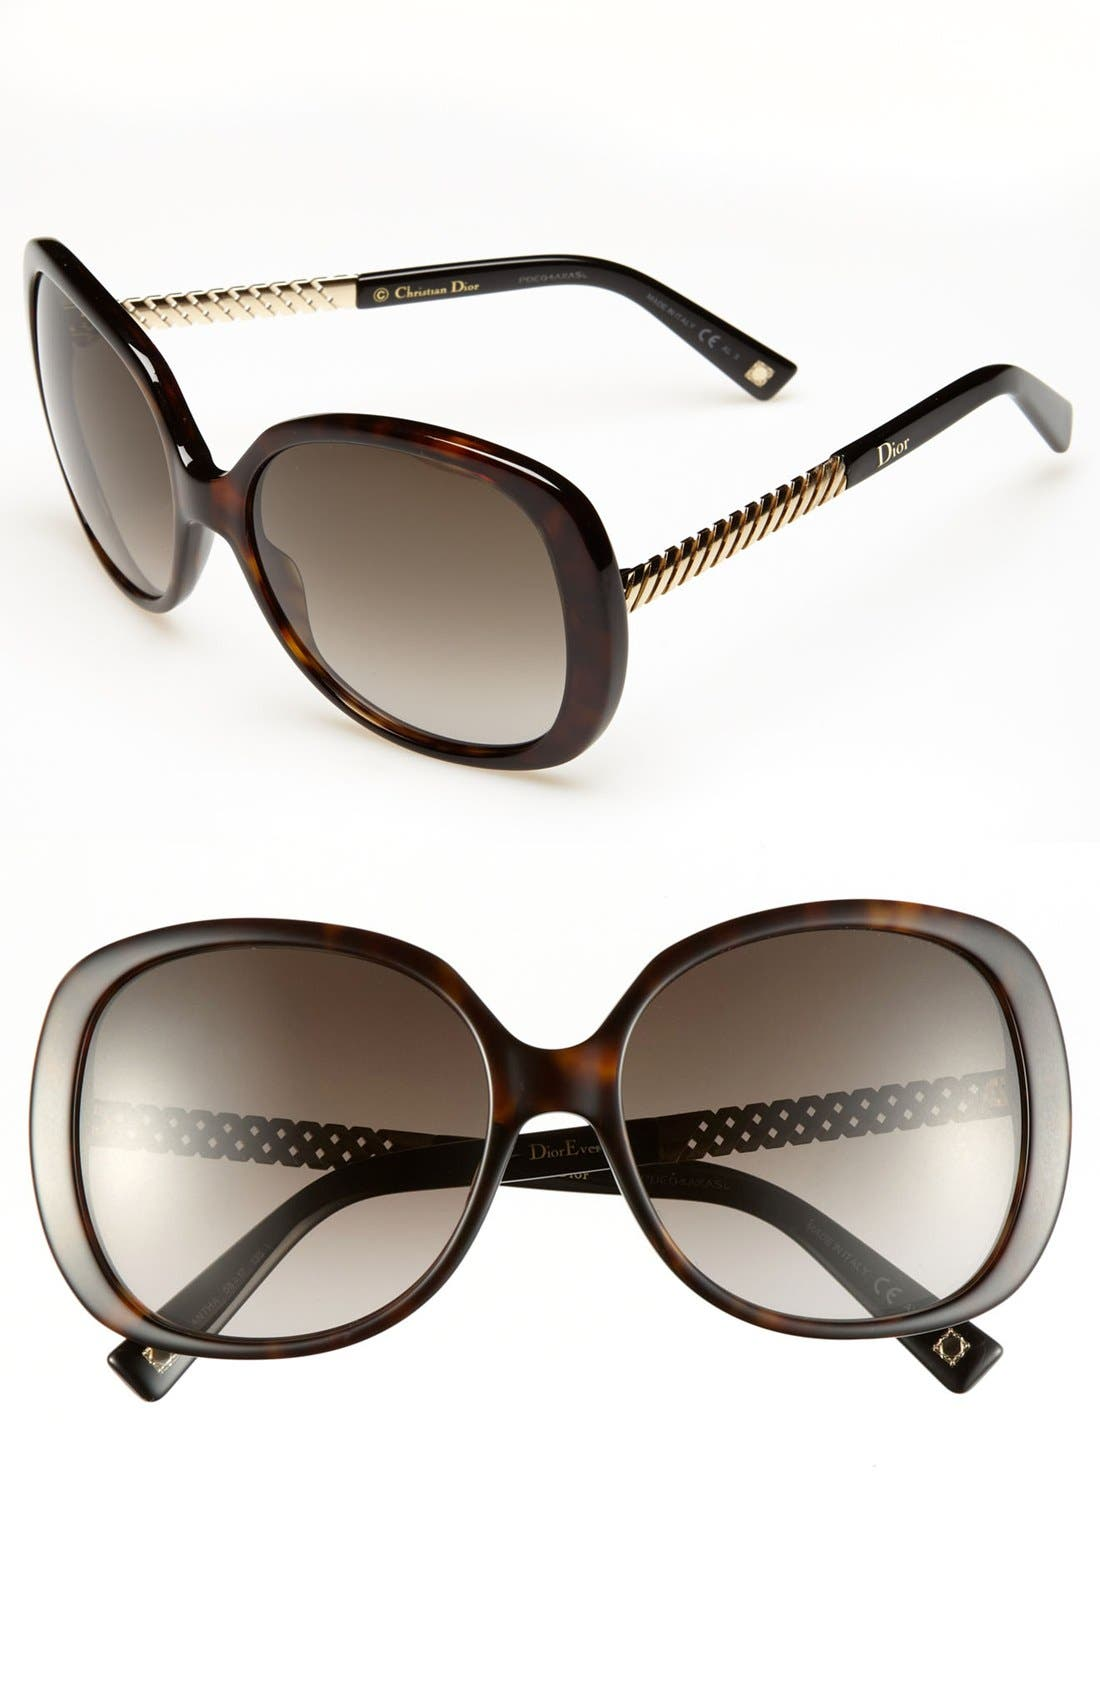 Main Image - Dior 'Ever' 58mm Sunglasses